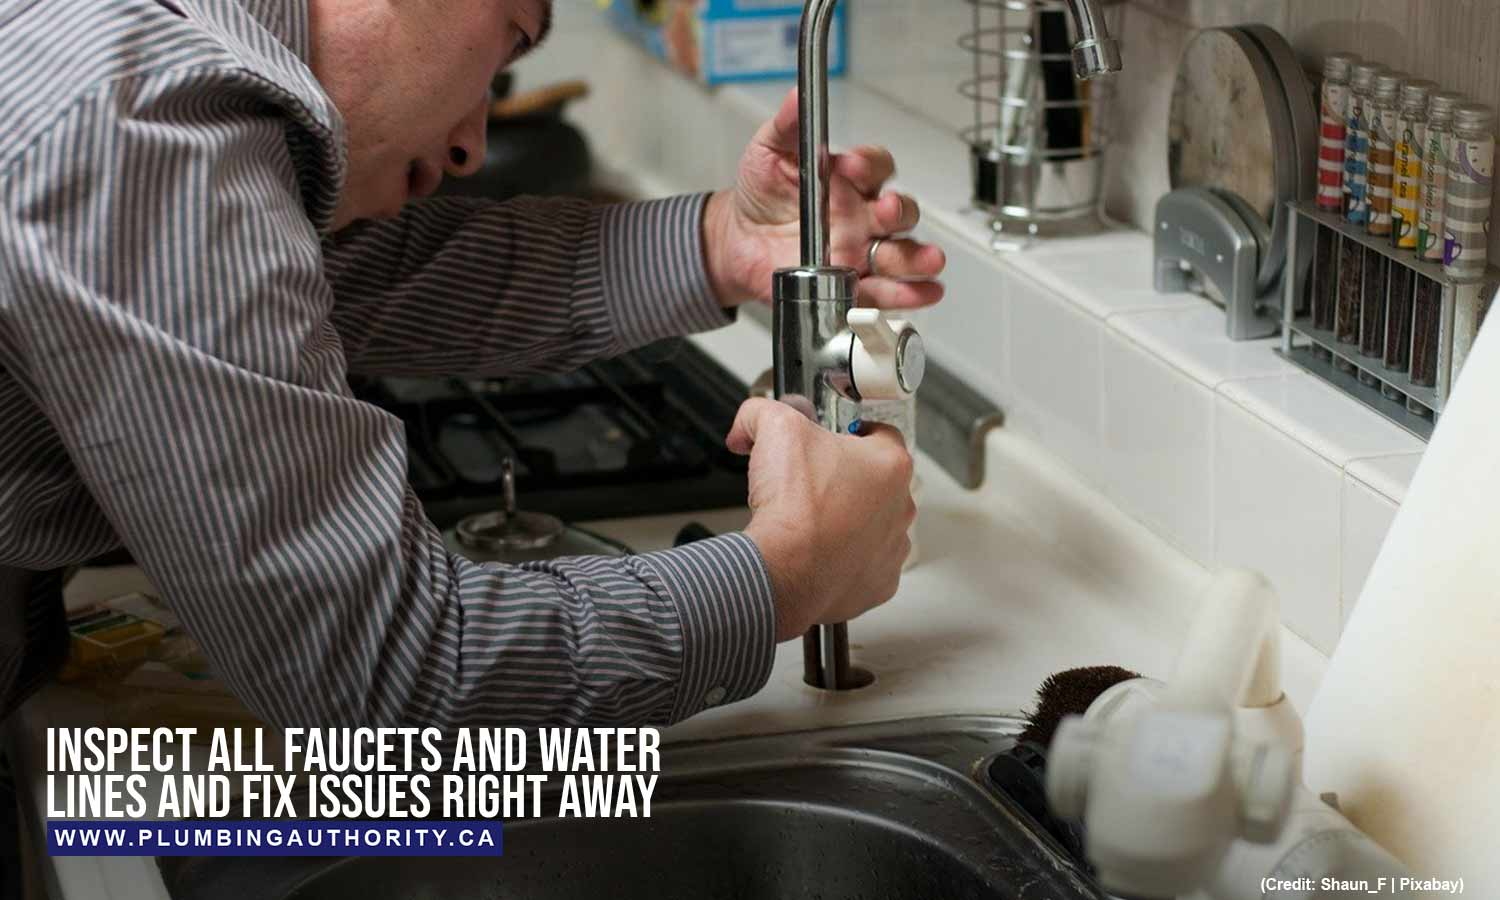 Inspect all faucets and water lines